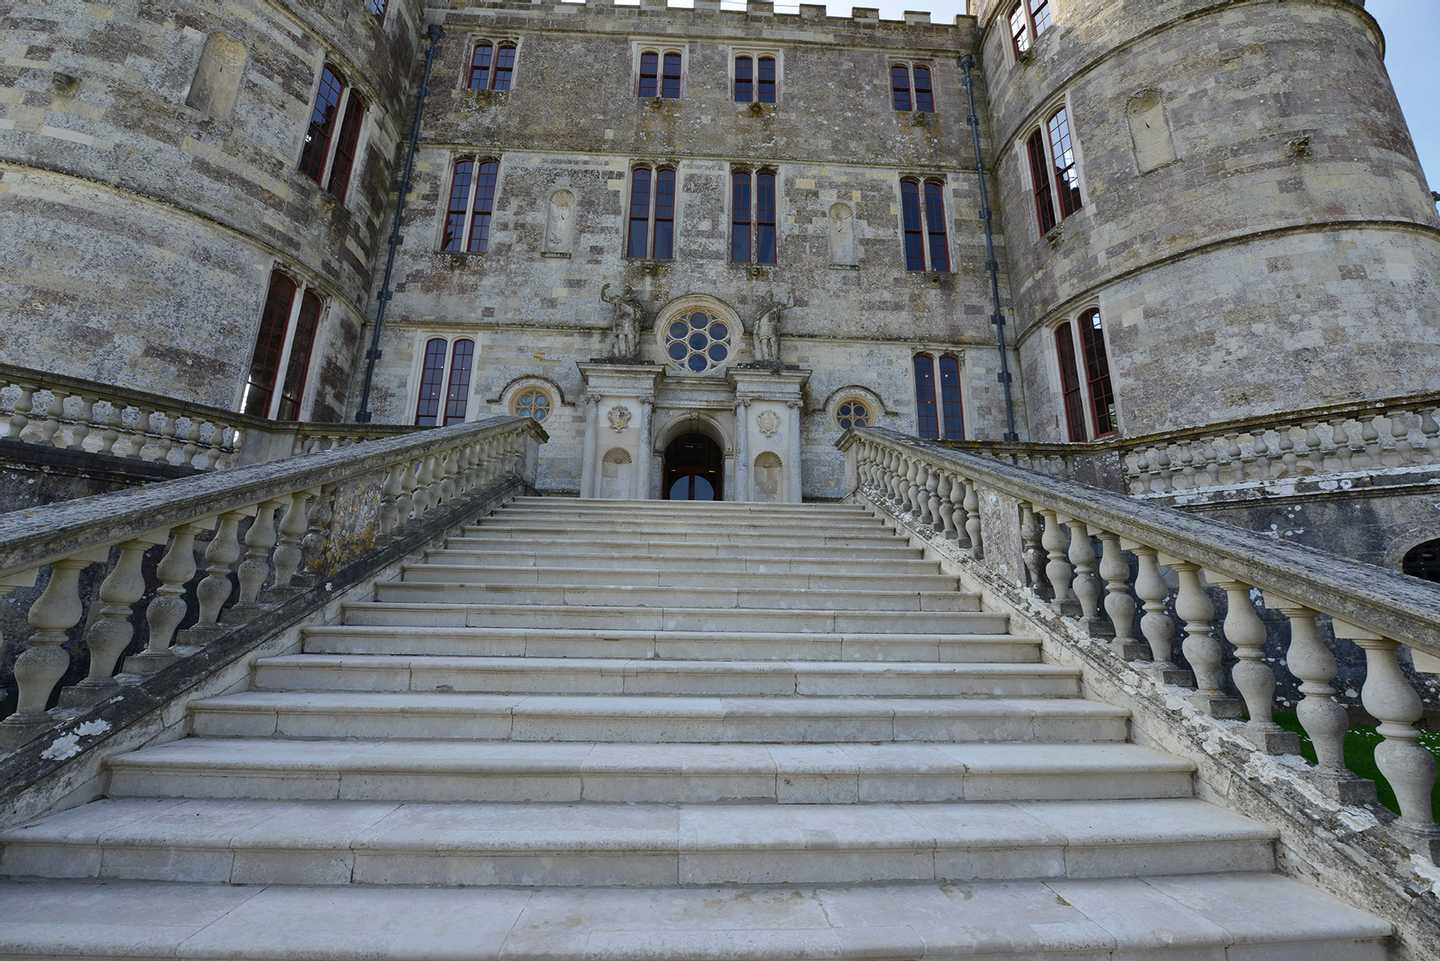 The steps leading up to Lulworth Castle